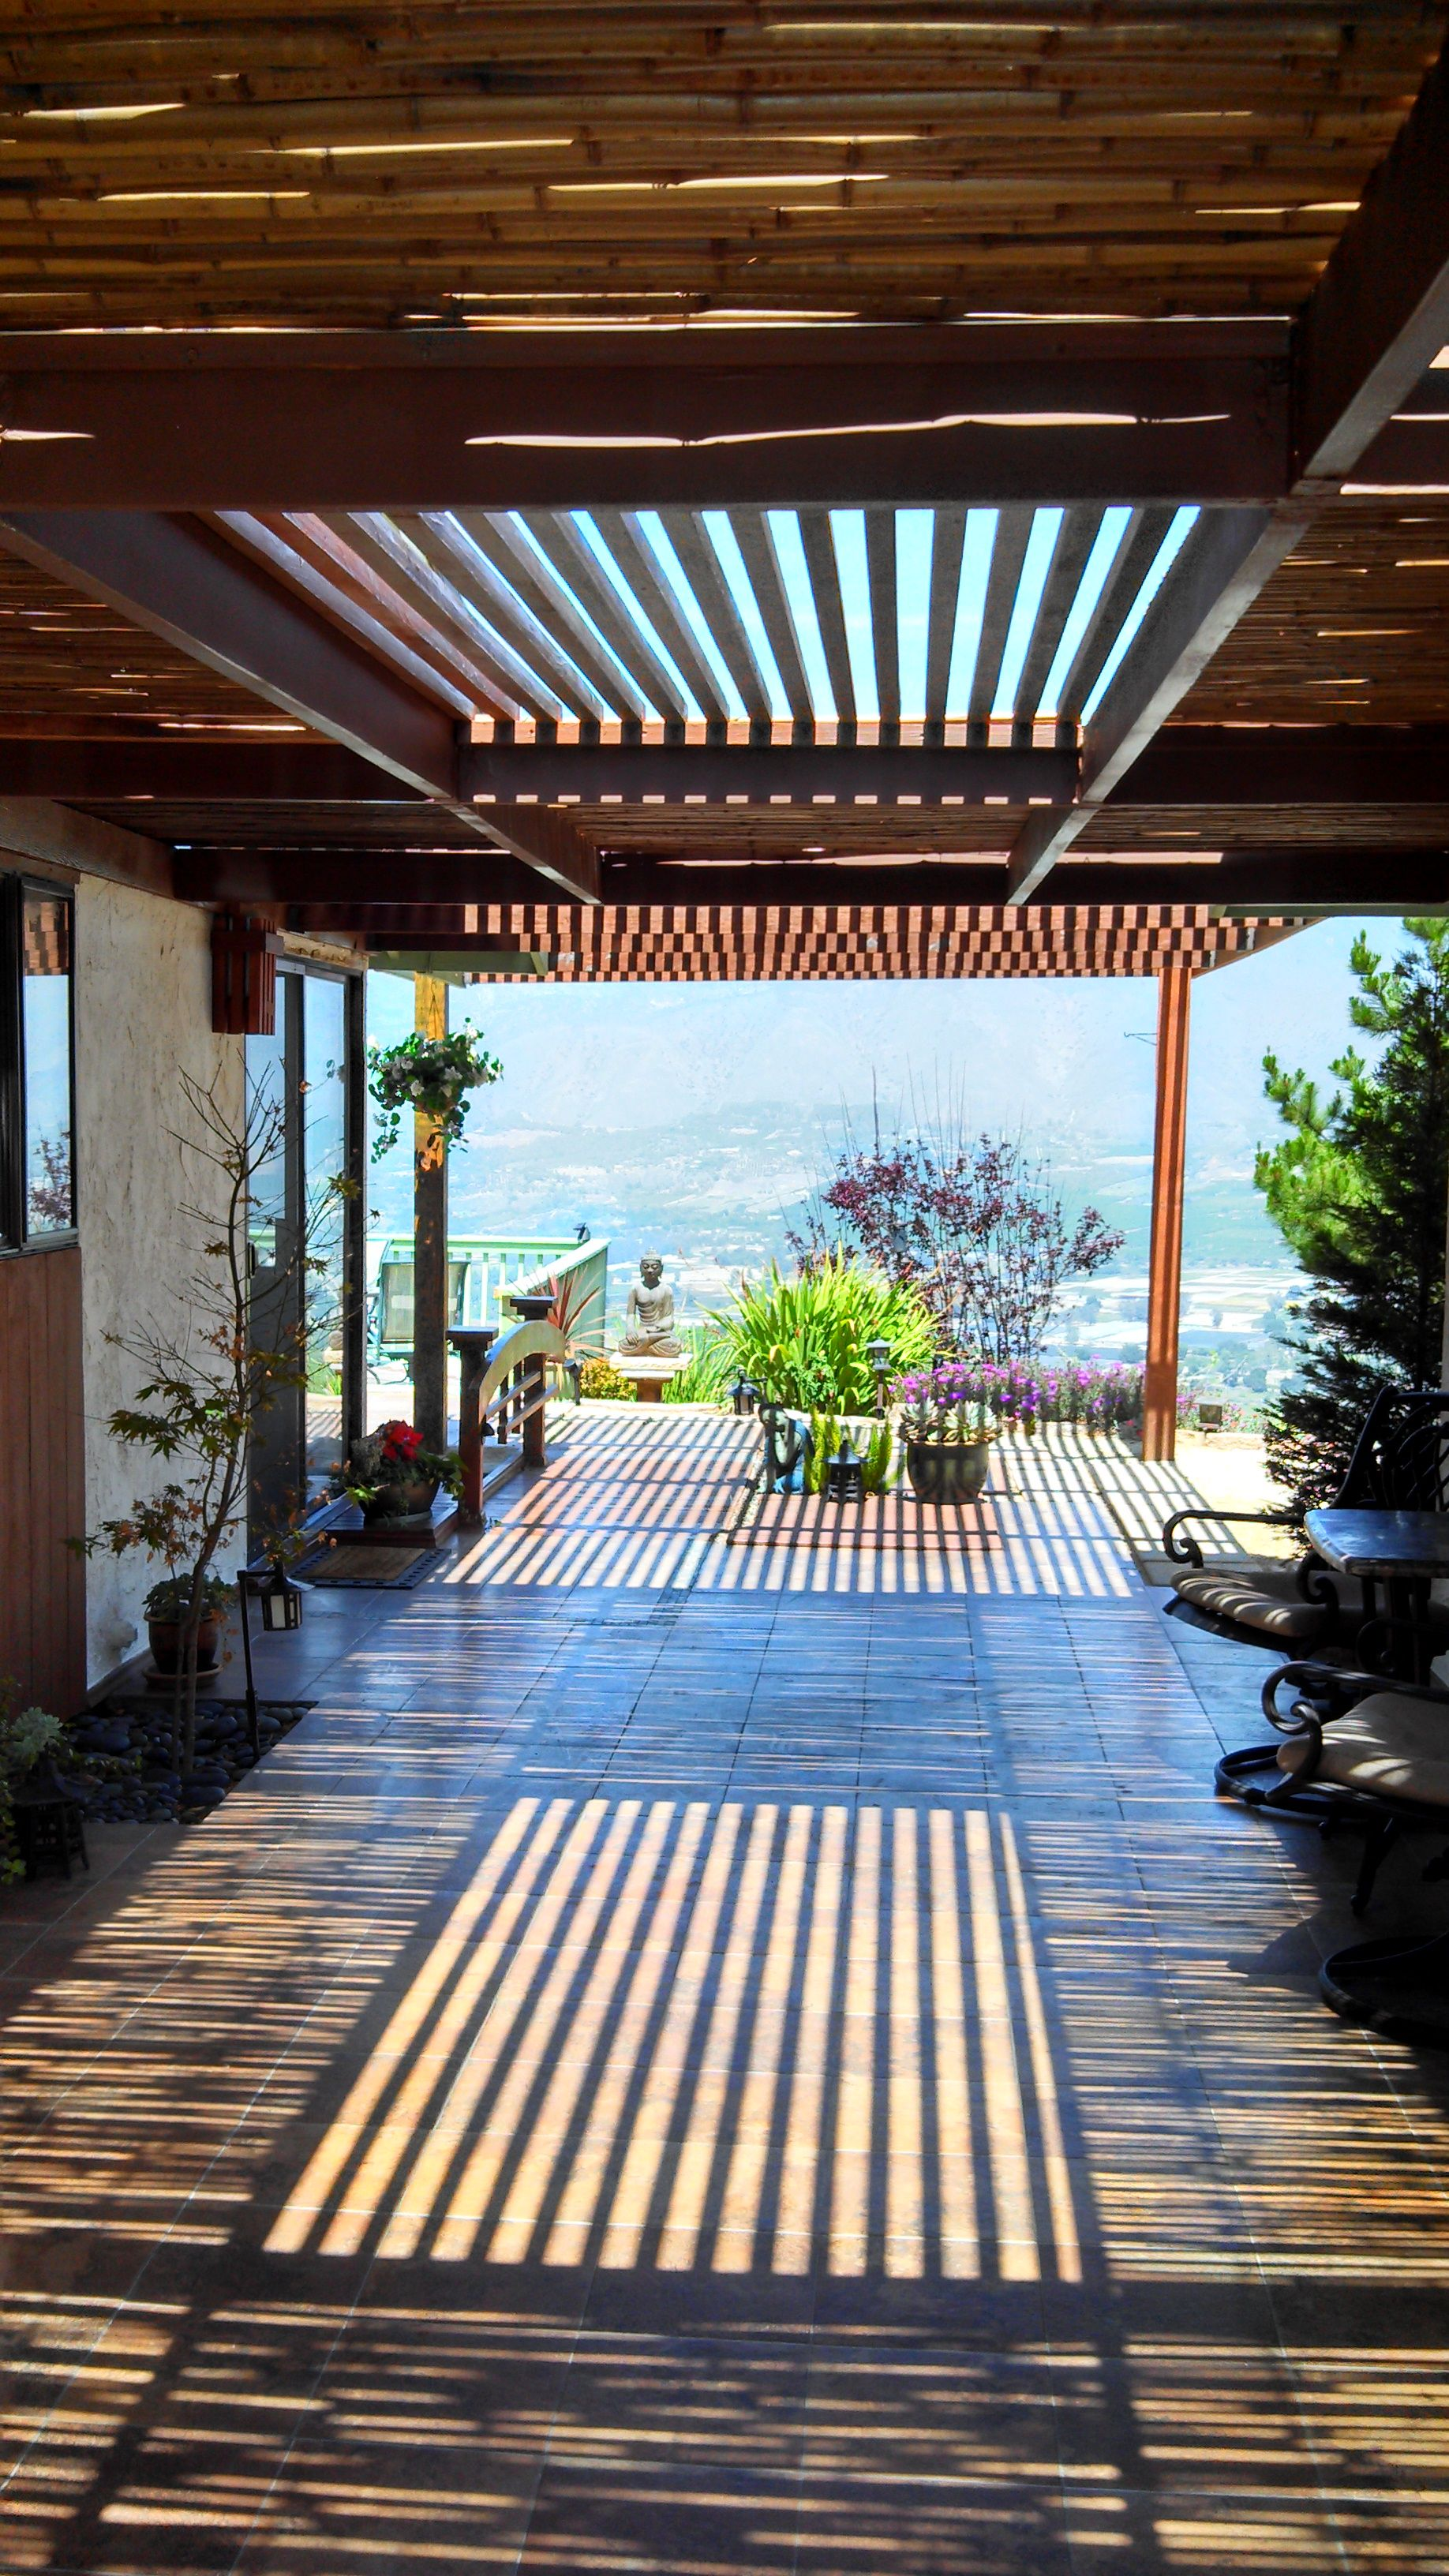 Bamboo Fencing Patio Cover   DIY Backyard Projects